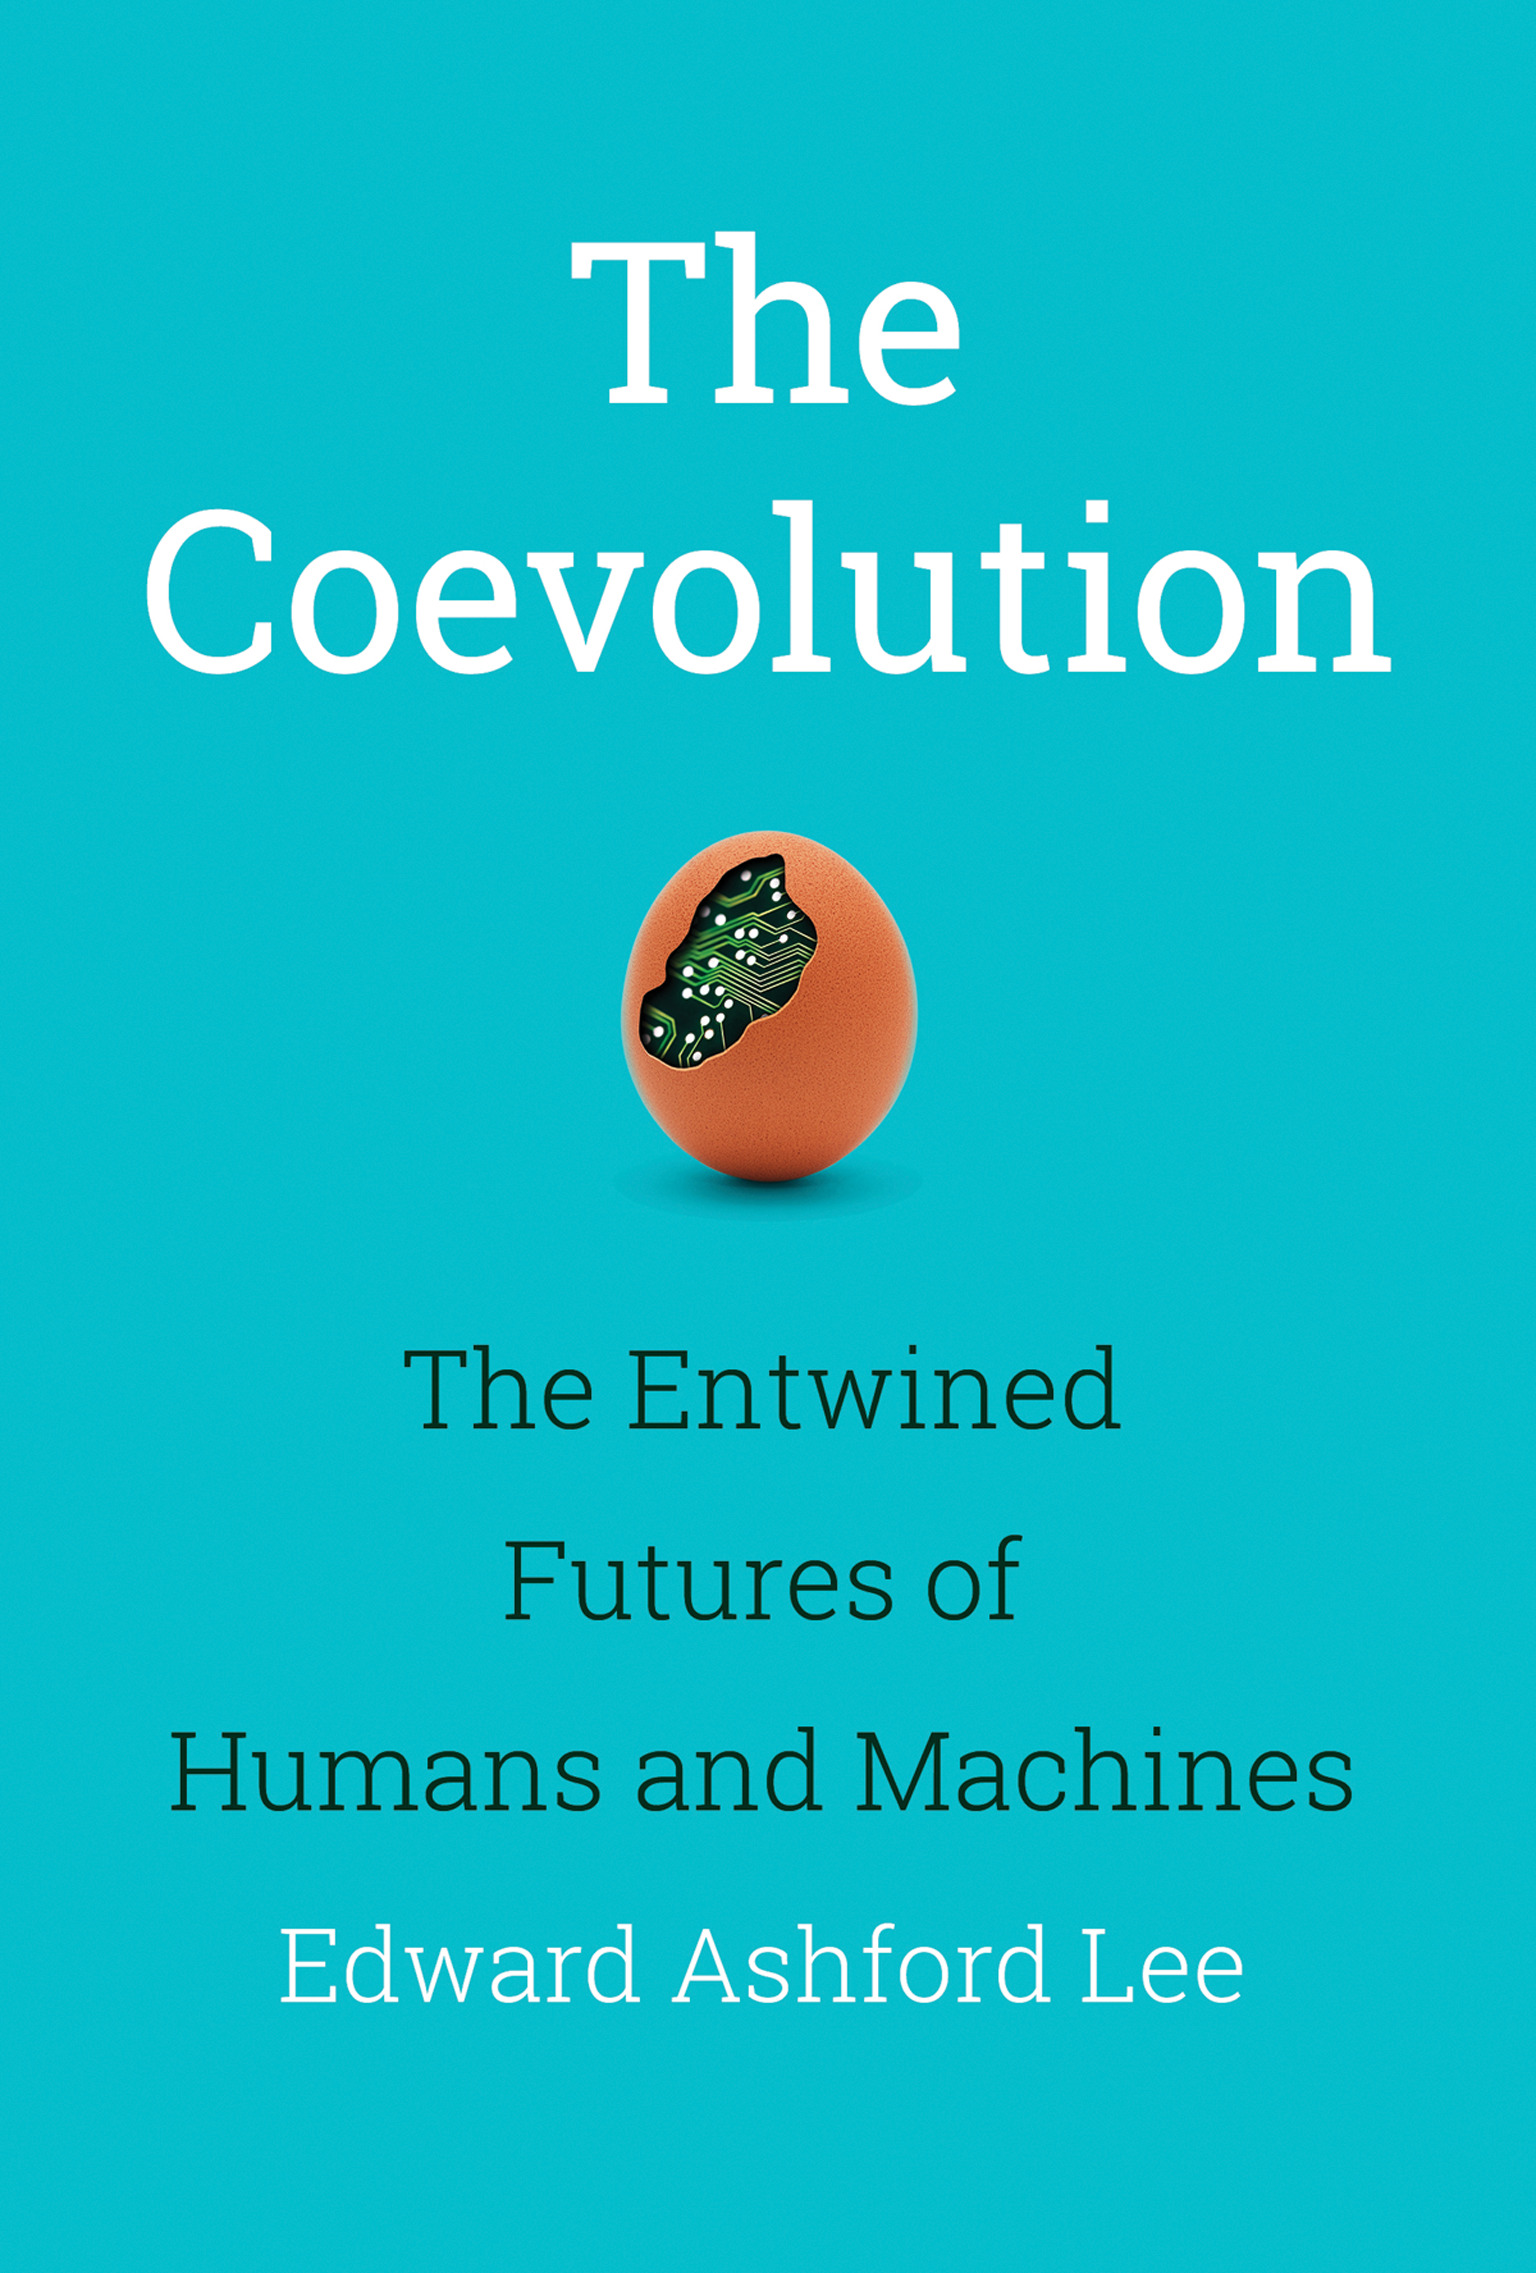 The Coevolution